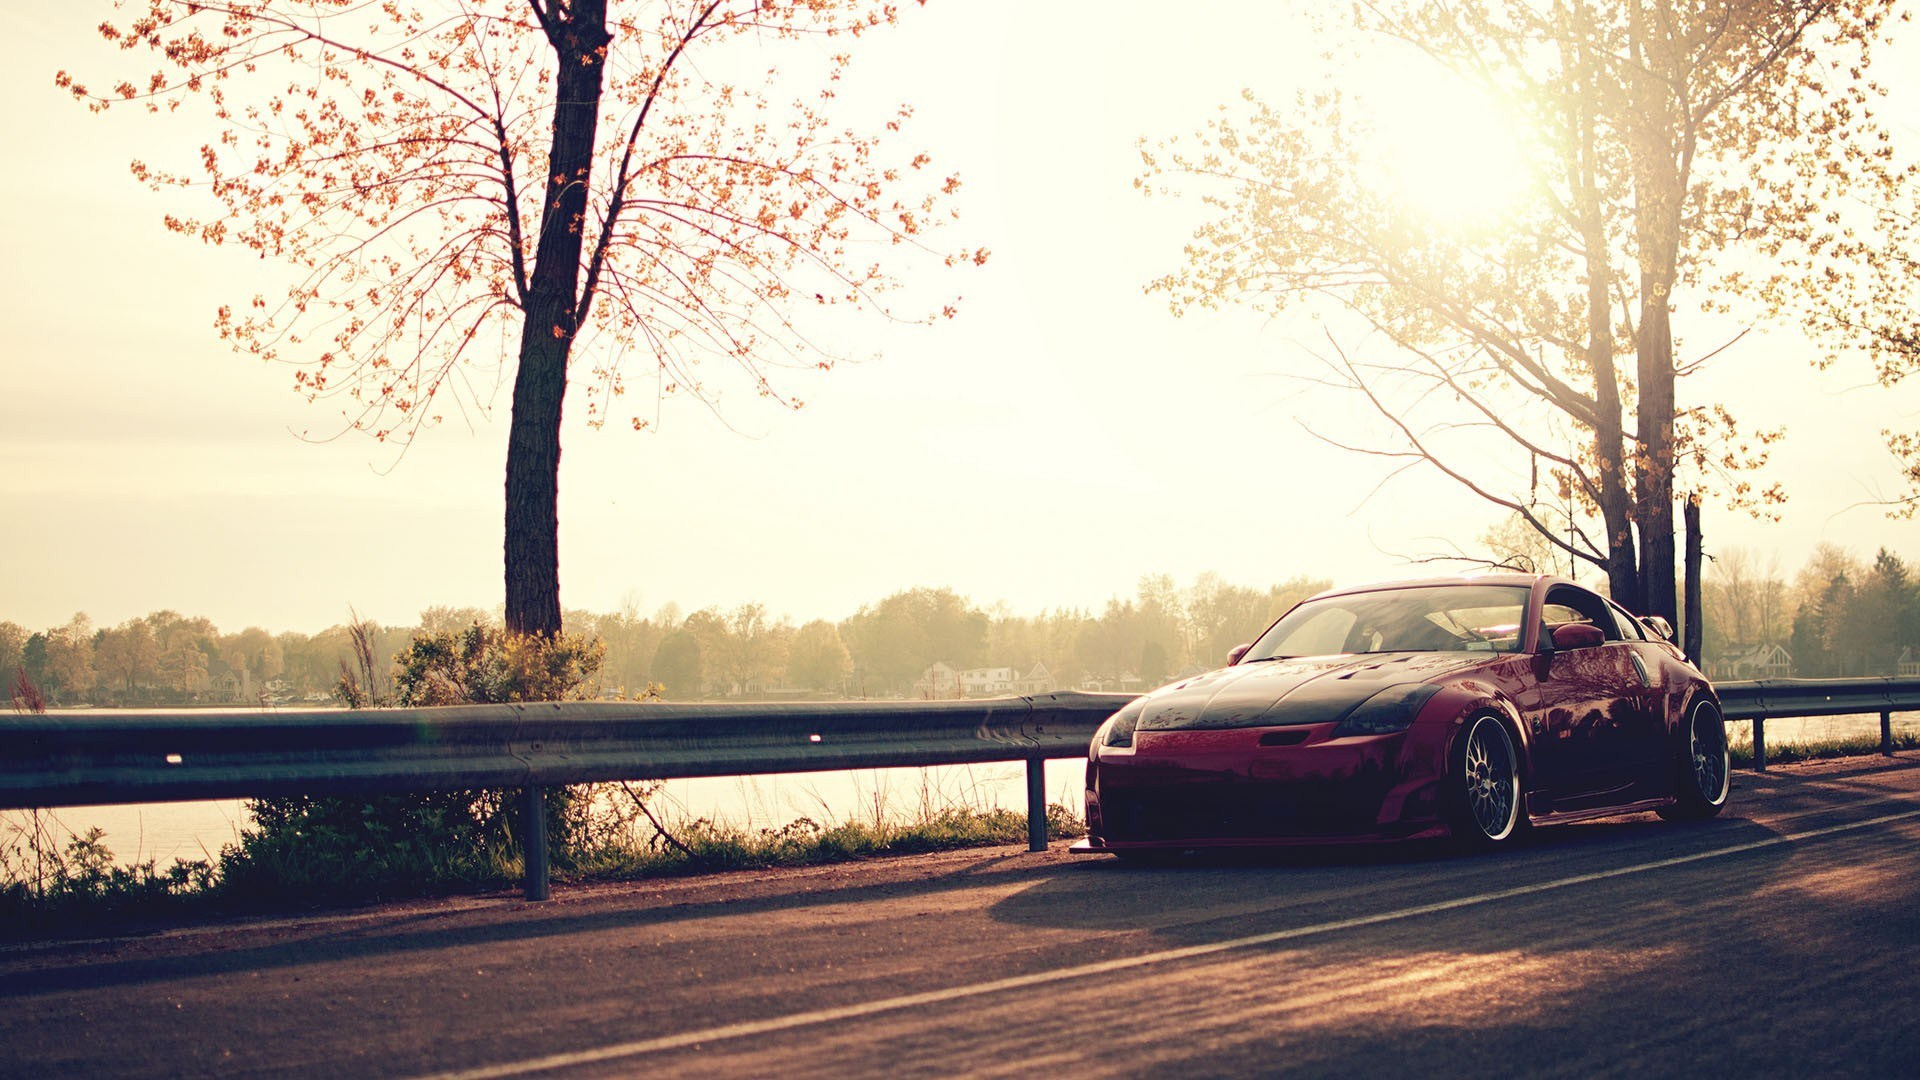 Tuner Car Wallpaper Hd Nissan 350z Full Hd Wallpaper And Background Image